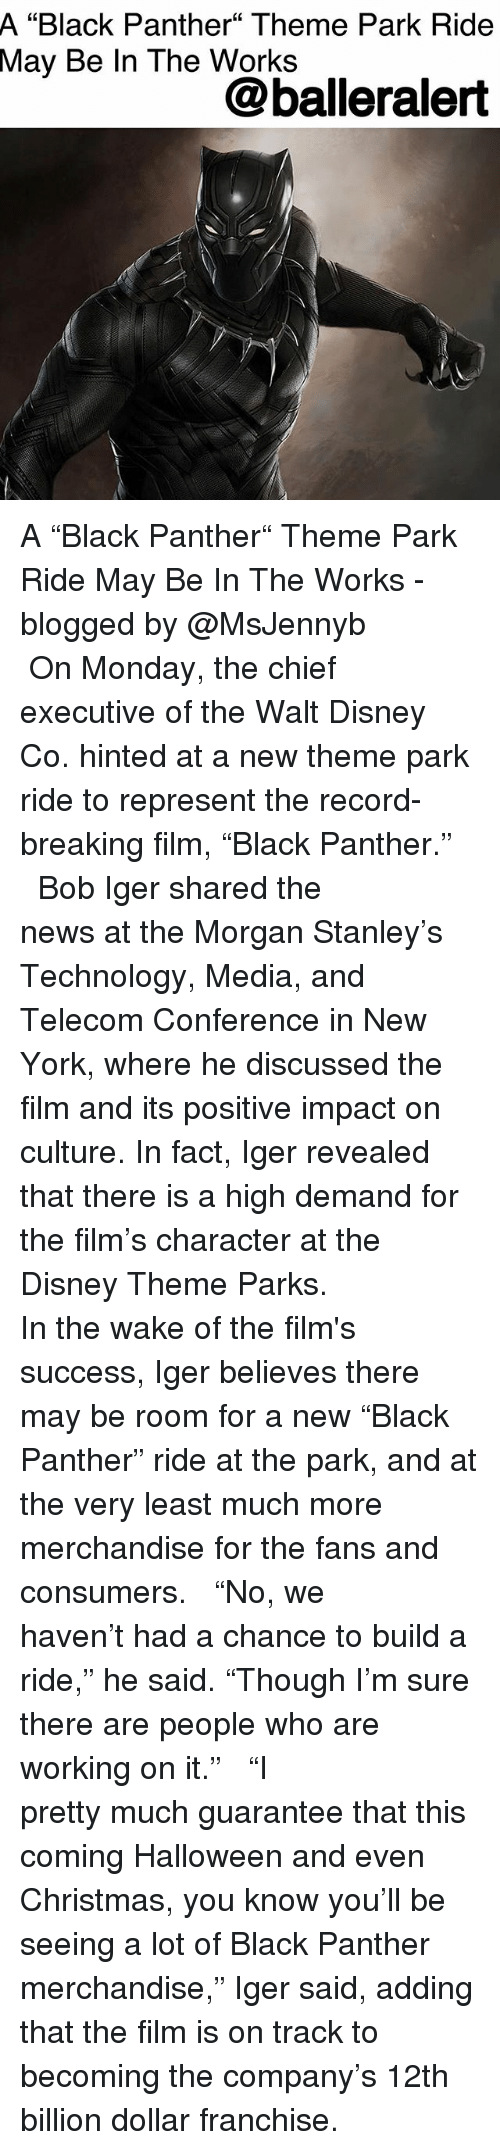 "Walt Disney: A  ""Black Panther"" Theme Park Ride  May  Be In The Works  @balleralert A ""Black Panther"" Theme Park Ride May Be In The Works - blogged by @MsJennyb ⠀⠀⠀⠀⠀⠀⠀ ⠀⠀⠀⠀⠀⠀⠀ On Monday, the chief executive of the Walt Disney Co. hinted at a new theme park ride to represent the record-breaking film, ""Black Panther."" ⠀⠀⠀⠀⠀⠀⠀ ⠀⠀⠀⠀⠀⠀⠀ Bob Iger shared the news at the Morgan Stanley's Technology, Media, and Telecom Conference in New York, where he discussed the film and its positive impact on culture. In fact, Iger revealed that there is a high demand for the film's character at the Disney Theme Parks. ⠀⠀⠀⠀⠀⠀⠀ ⠀⠀⠀⠀⠀⠀⠀ In the wake of the film's success, Iger believes there may be room for a new ""Black Panther"" ride at the park, and at the very least much more merchandise for the fans and consumers. ⠀⠀⠀⠀⠀⠀⠀ ⠀⠀⠀⠀⠀⠀⠀ ""No, we haven't had a chance to build a ride,"" he said. ""Though I'm sure there are people who are working on it."" ⠀⠀⠀⠀⠀⠀⠀ ⠀⠀⠀⠀⠀⠀⠀ ""I pretty much guarantee that this coming Halloween and even Christmas, you know you'll be seeing a lot of Black Panther merchandise,"" Iger said, adding that the film is on track to becoming the company's 12th billion dollar franchise."